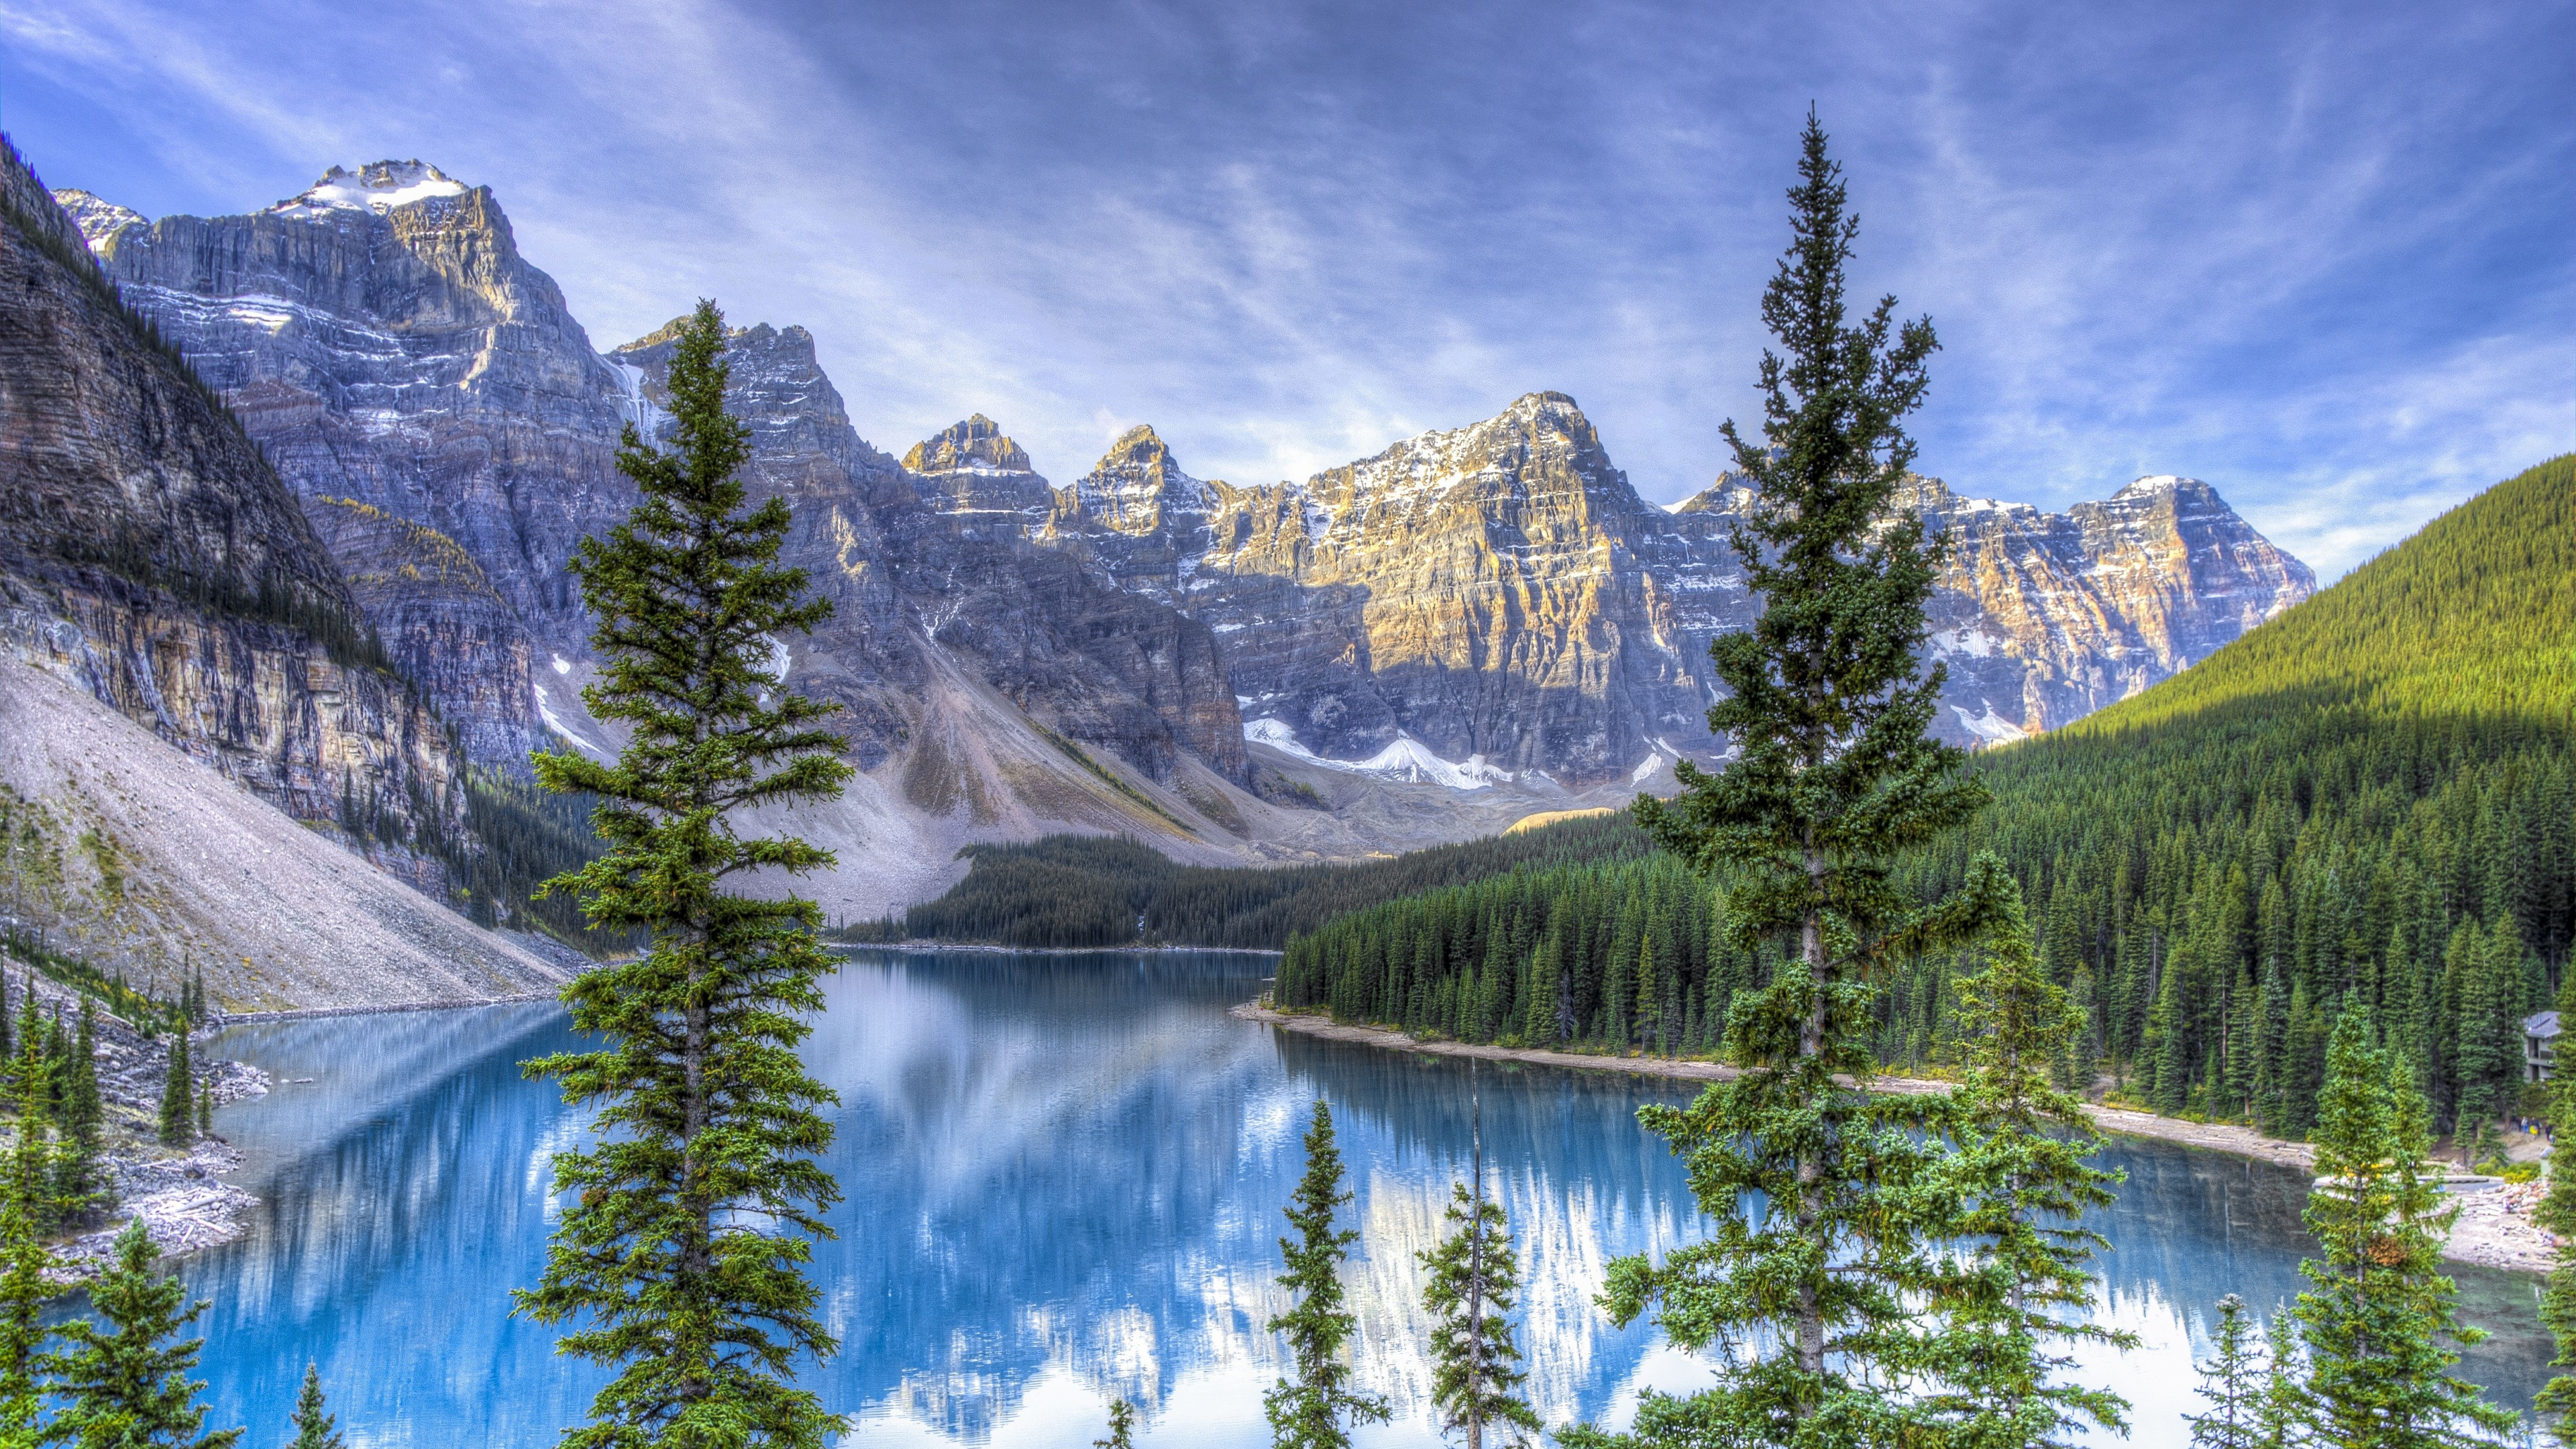 3840x2160 Moraine lake Alberta Canada Hdr Wallpaper Background 4K 3840x2160